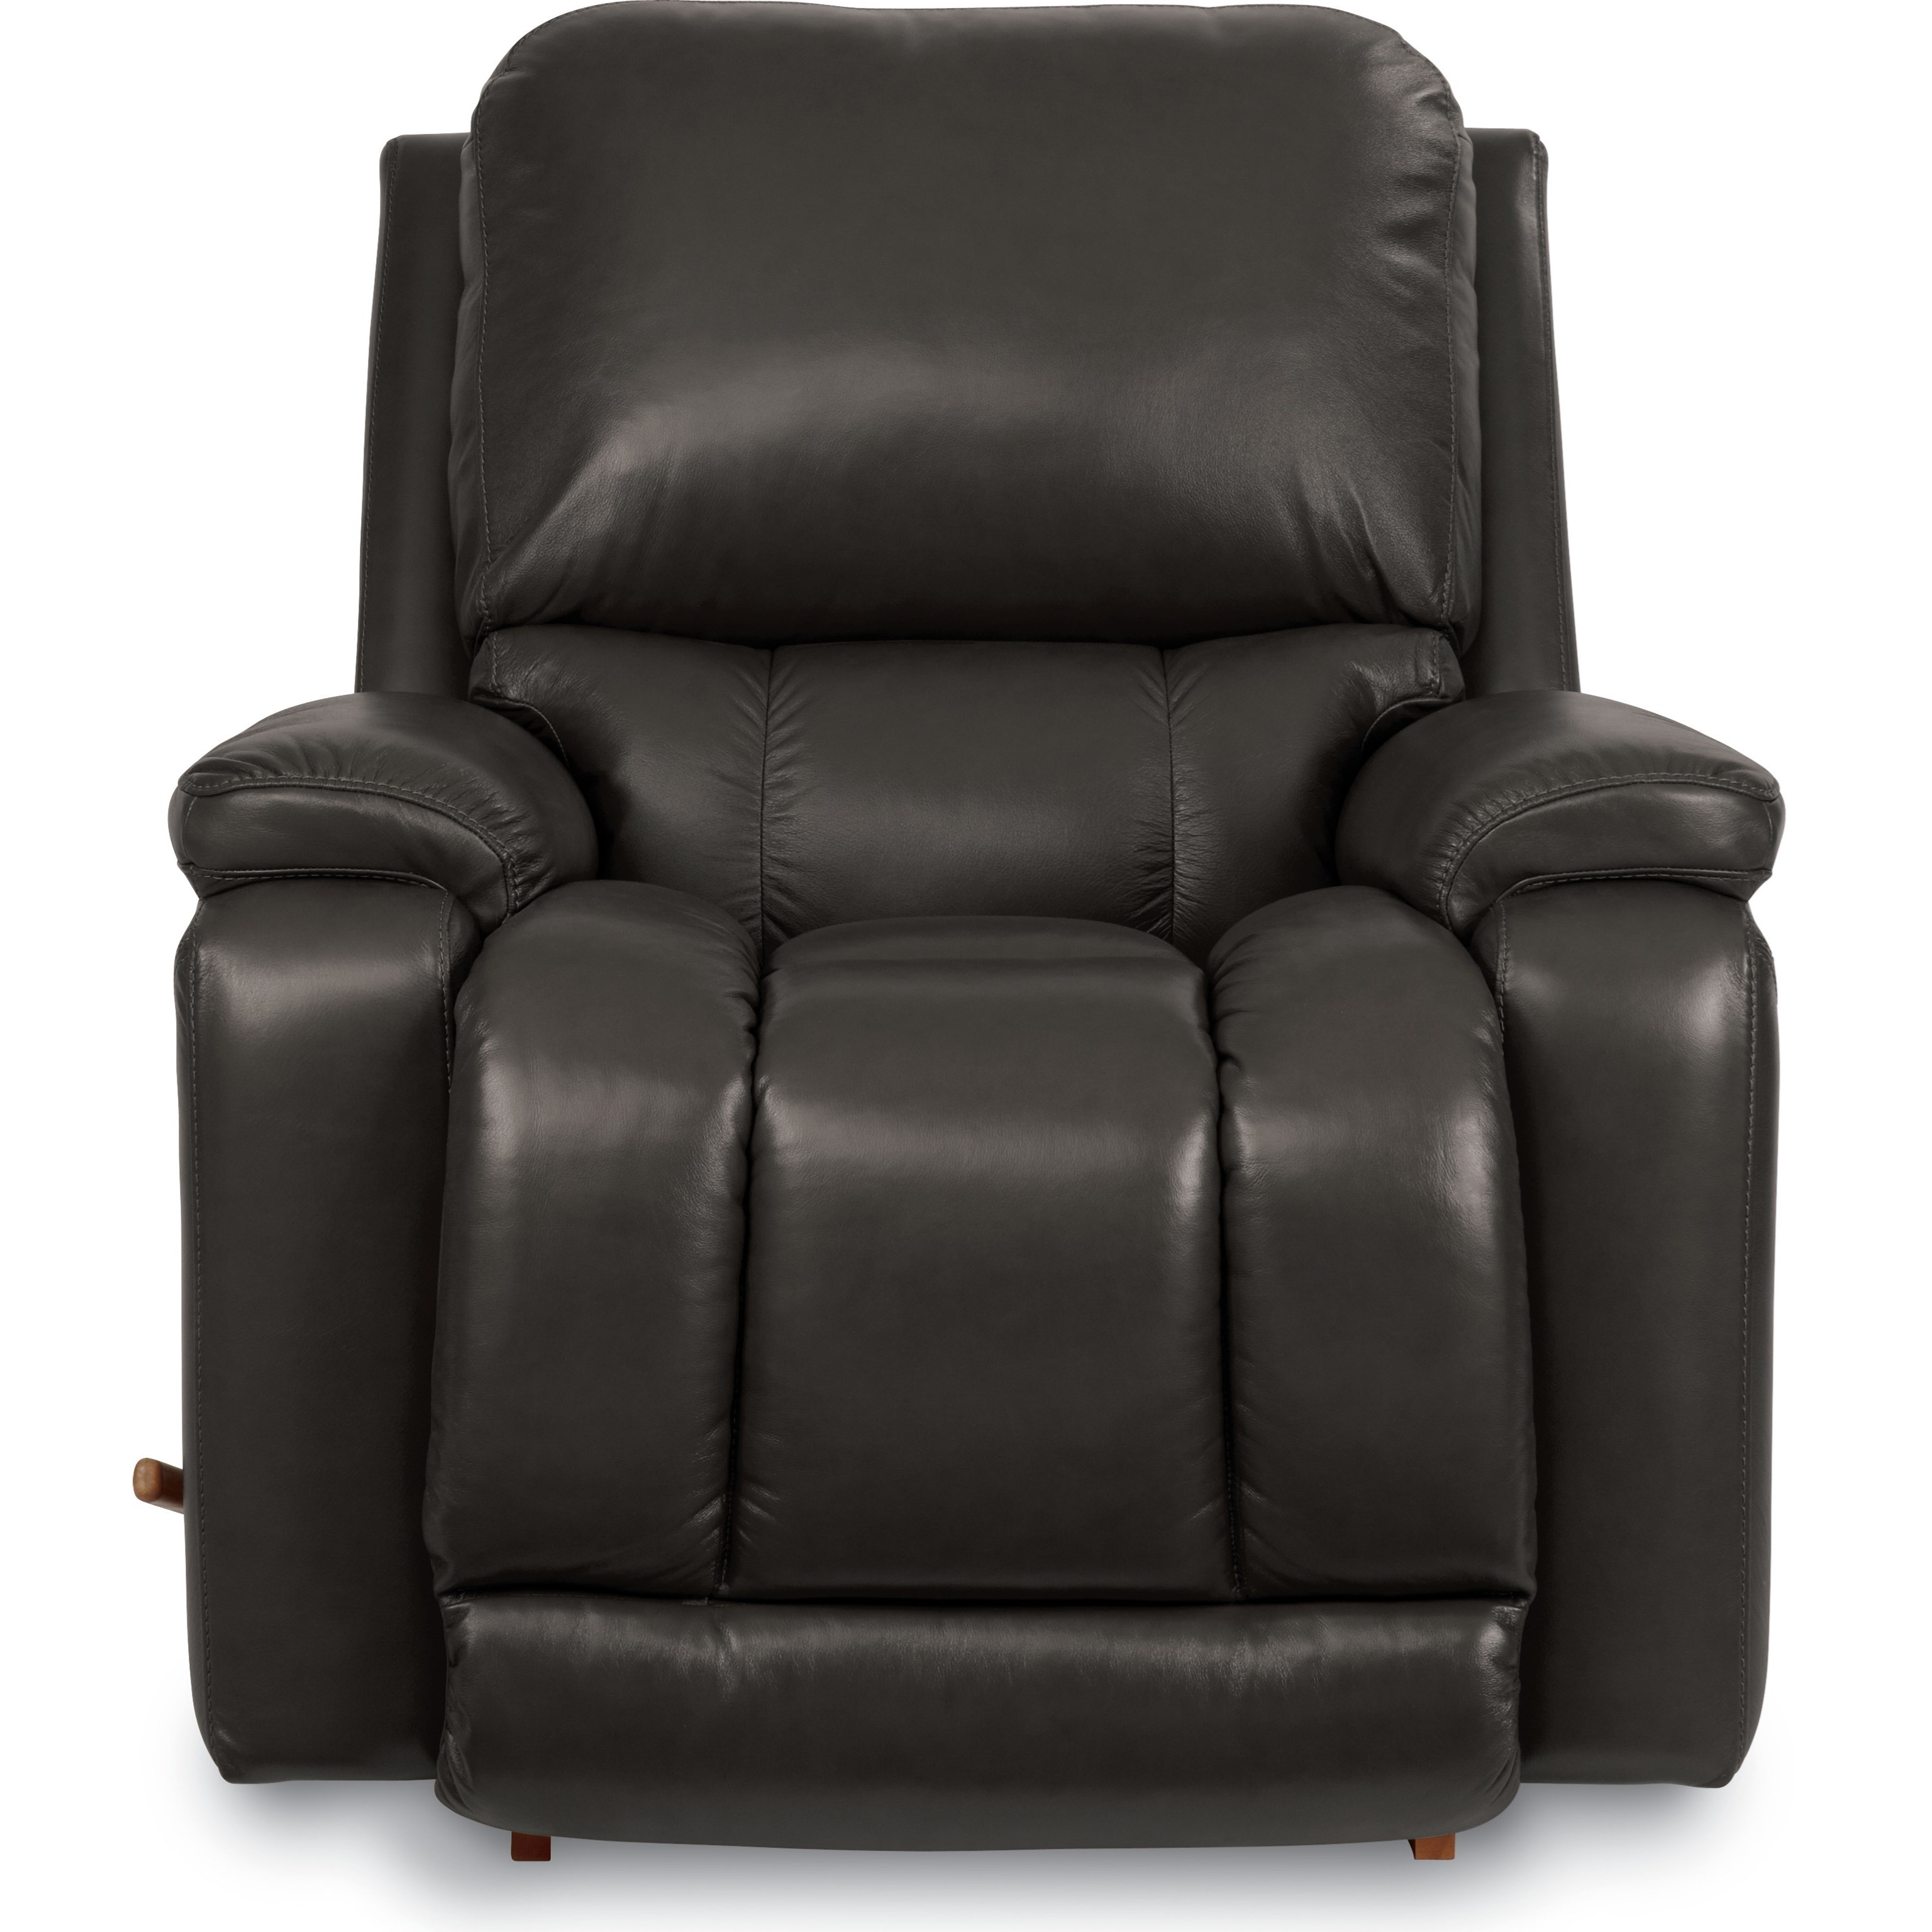 Leather Couch Repair Utah: La-Z-Boy Greyson Casual RECLINA-ROCKER® Recliner With